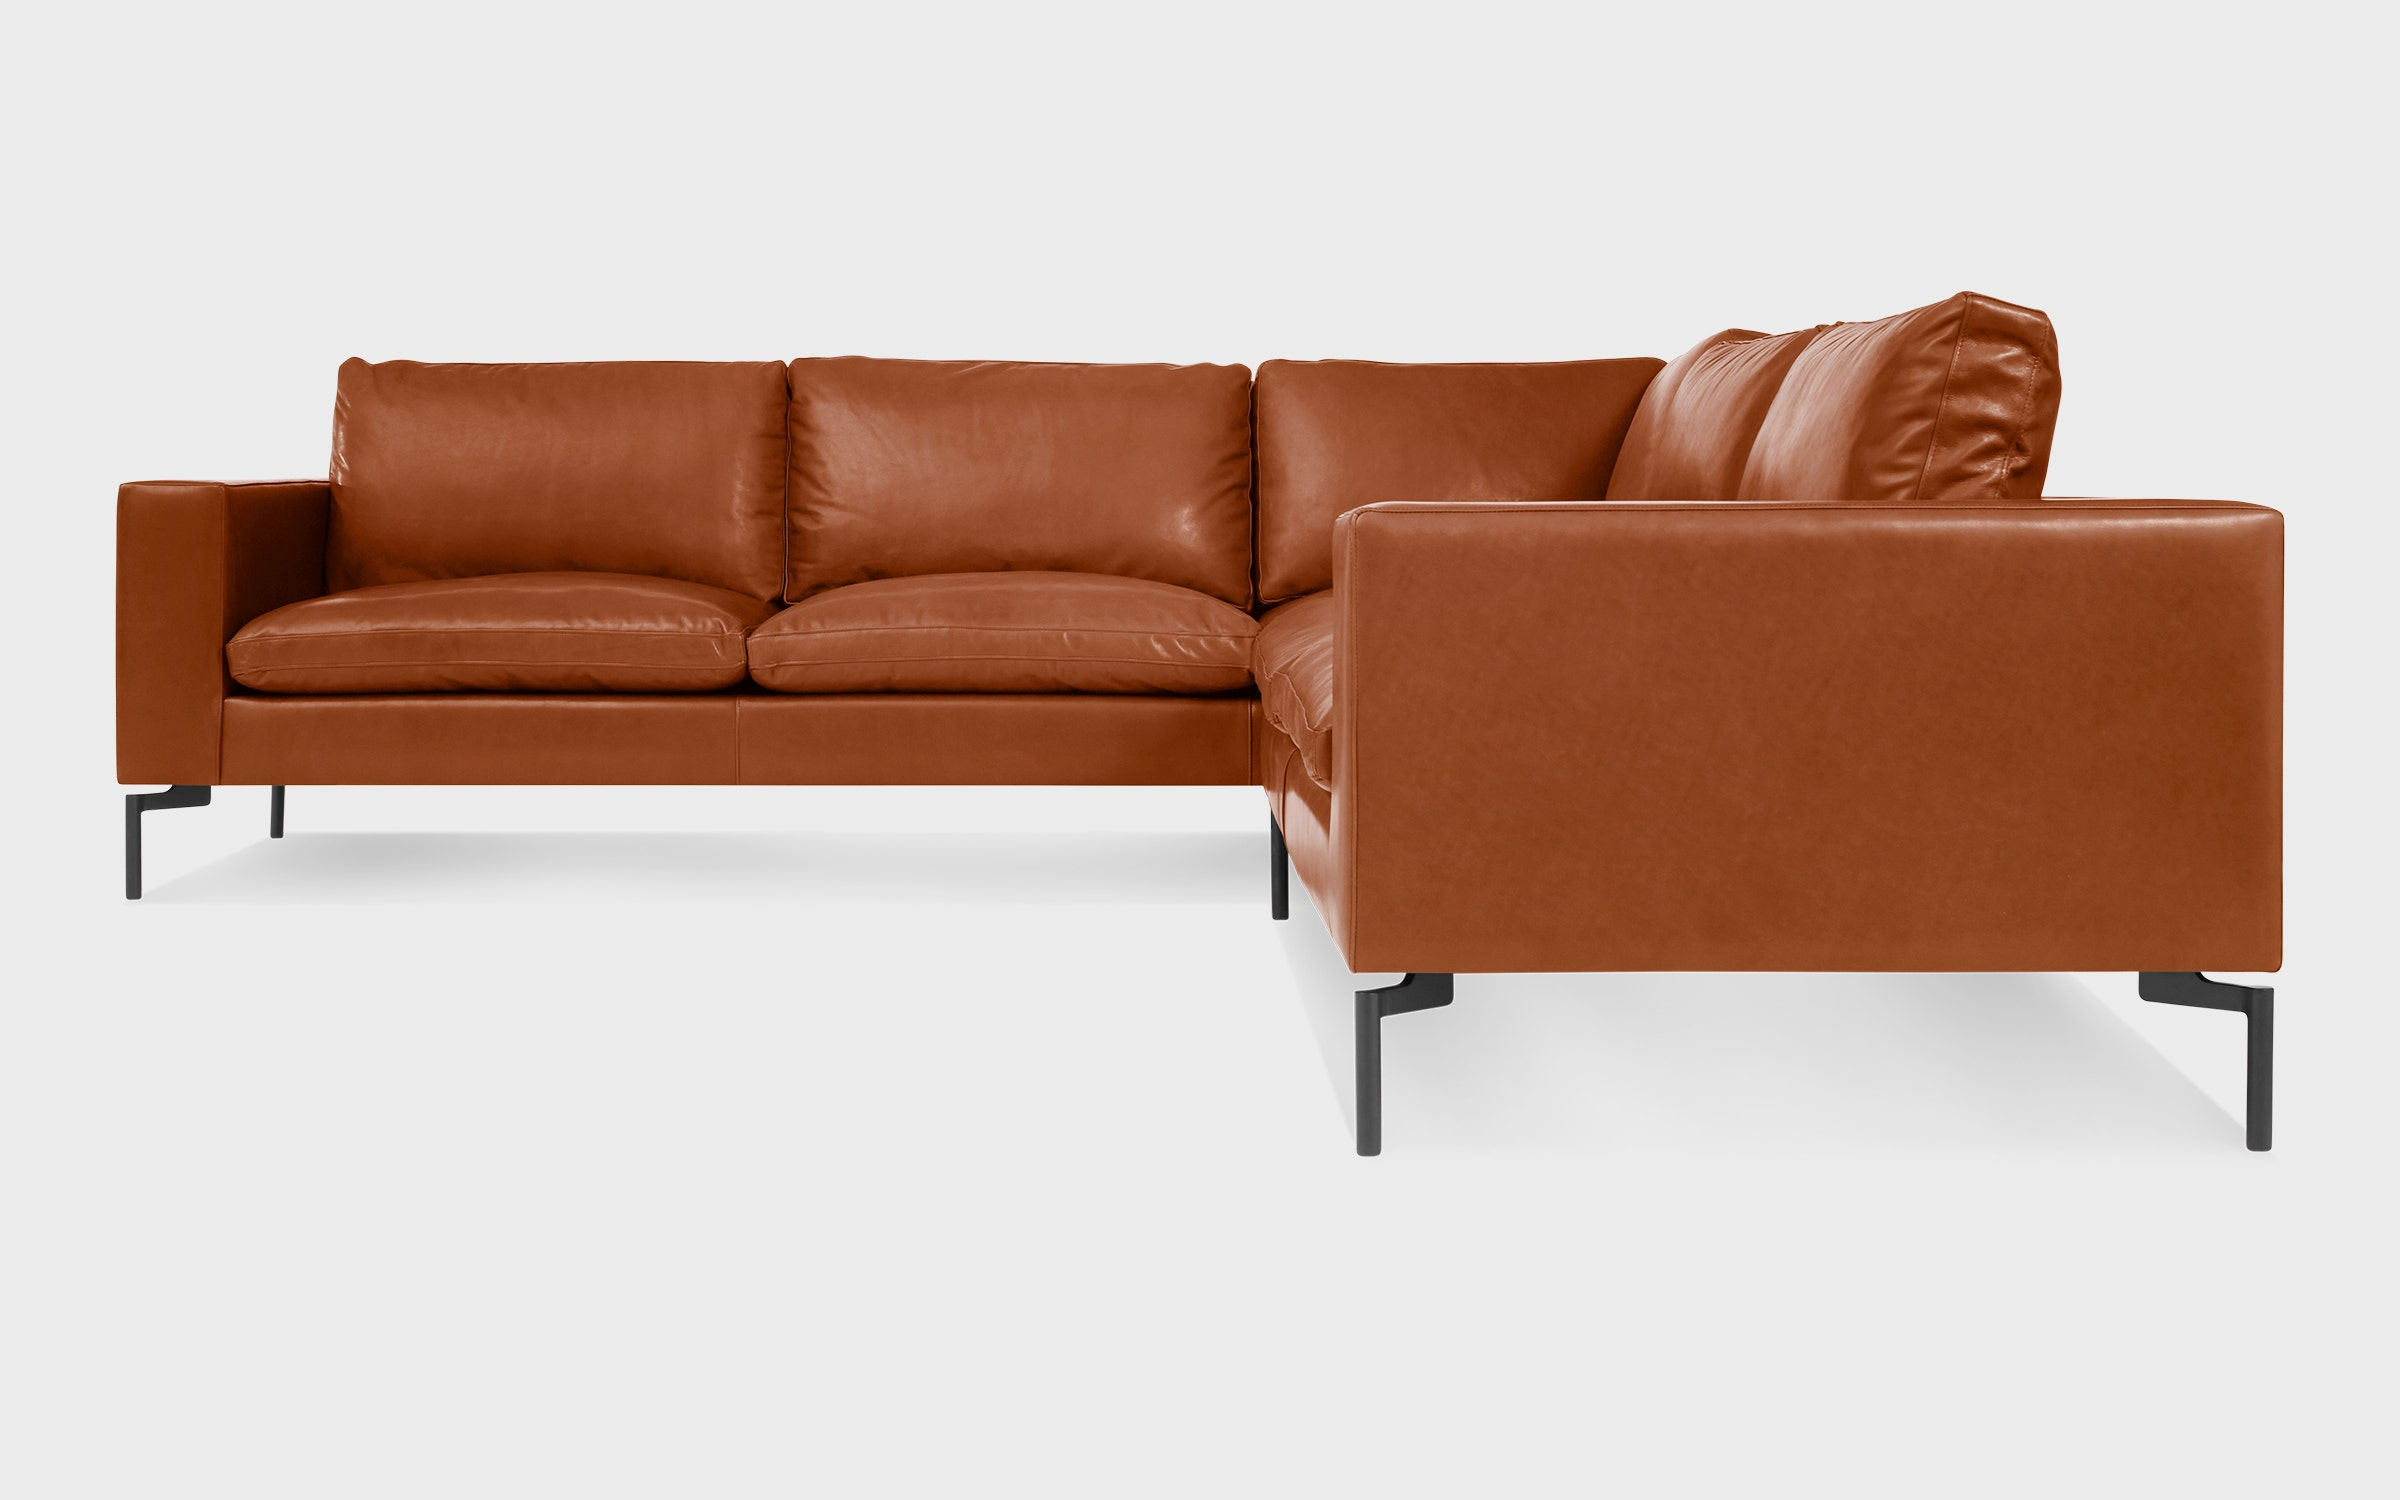 Superbe New Standard Left Leather Sectional Sofa   Small